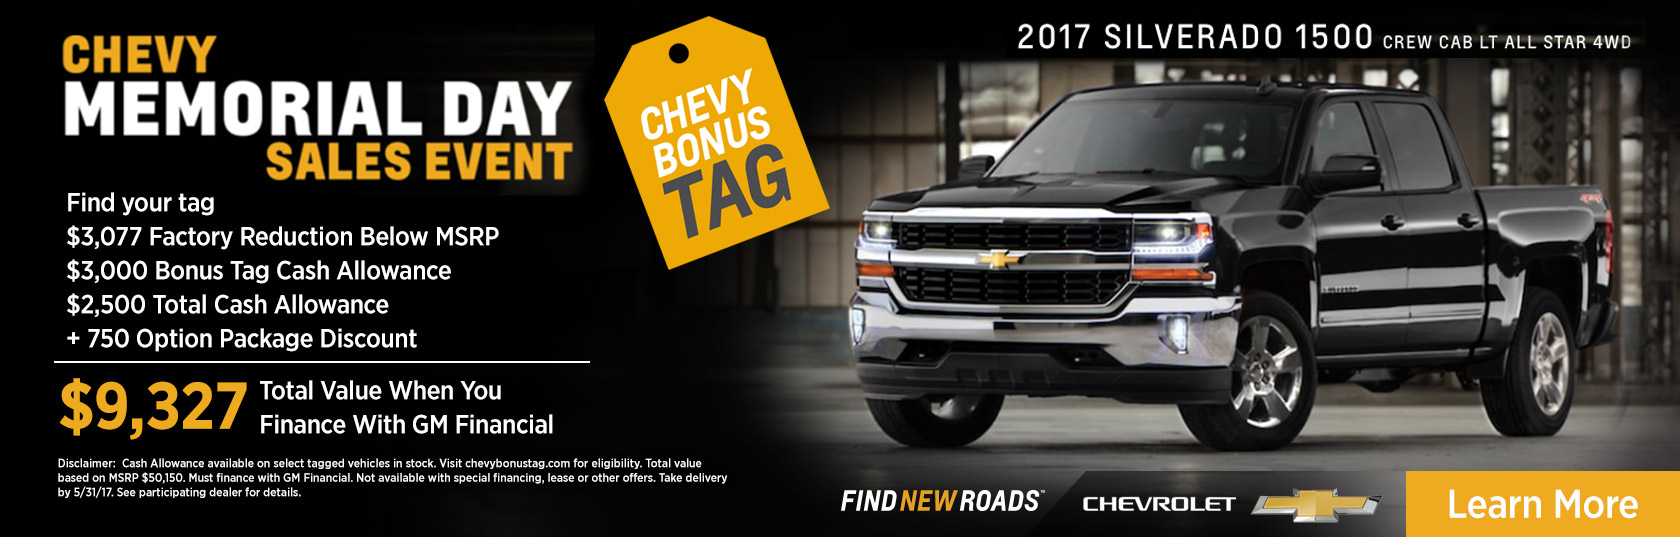 Memorial Day Car Sales 2017 >> Chevy Memorial Day Sales Event